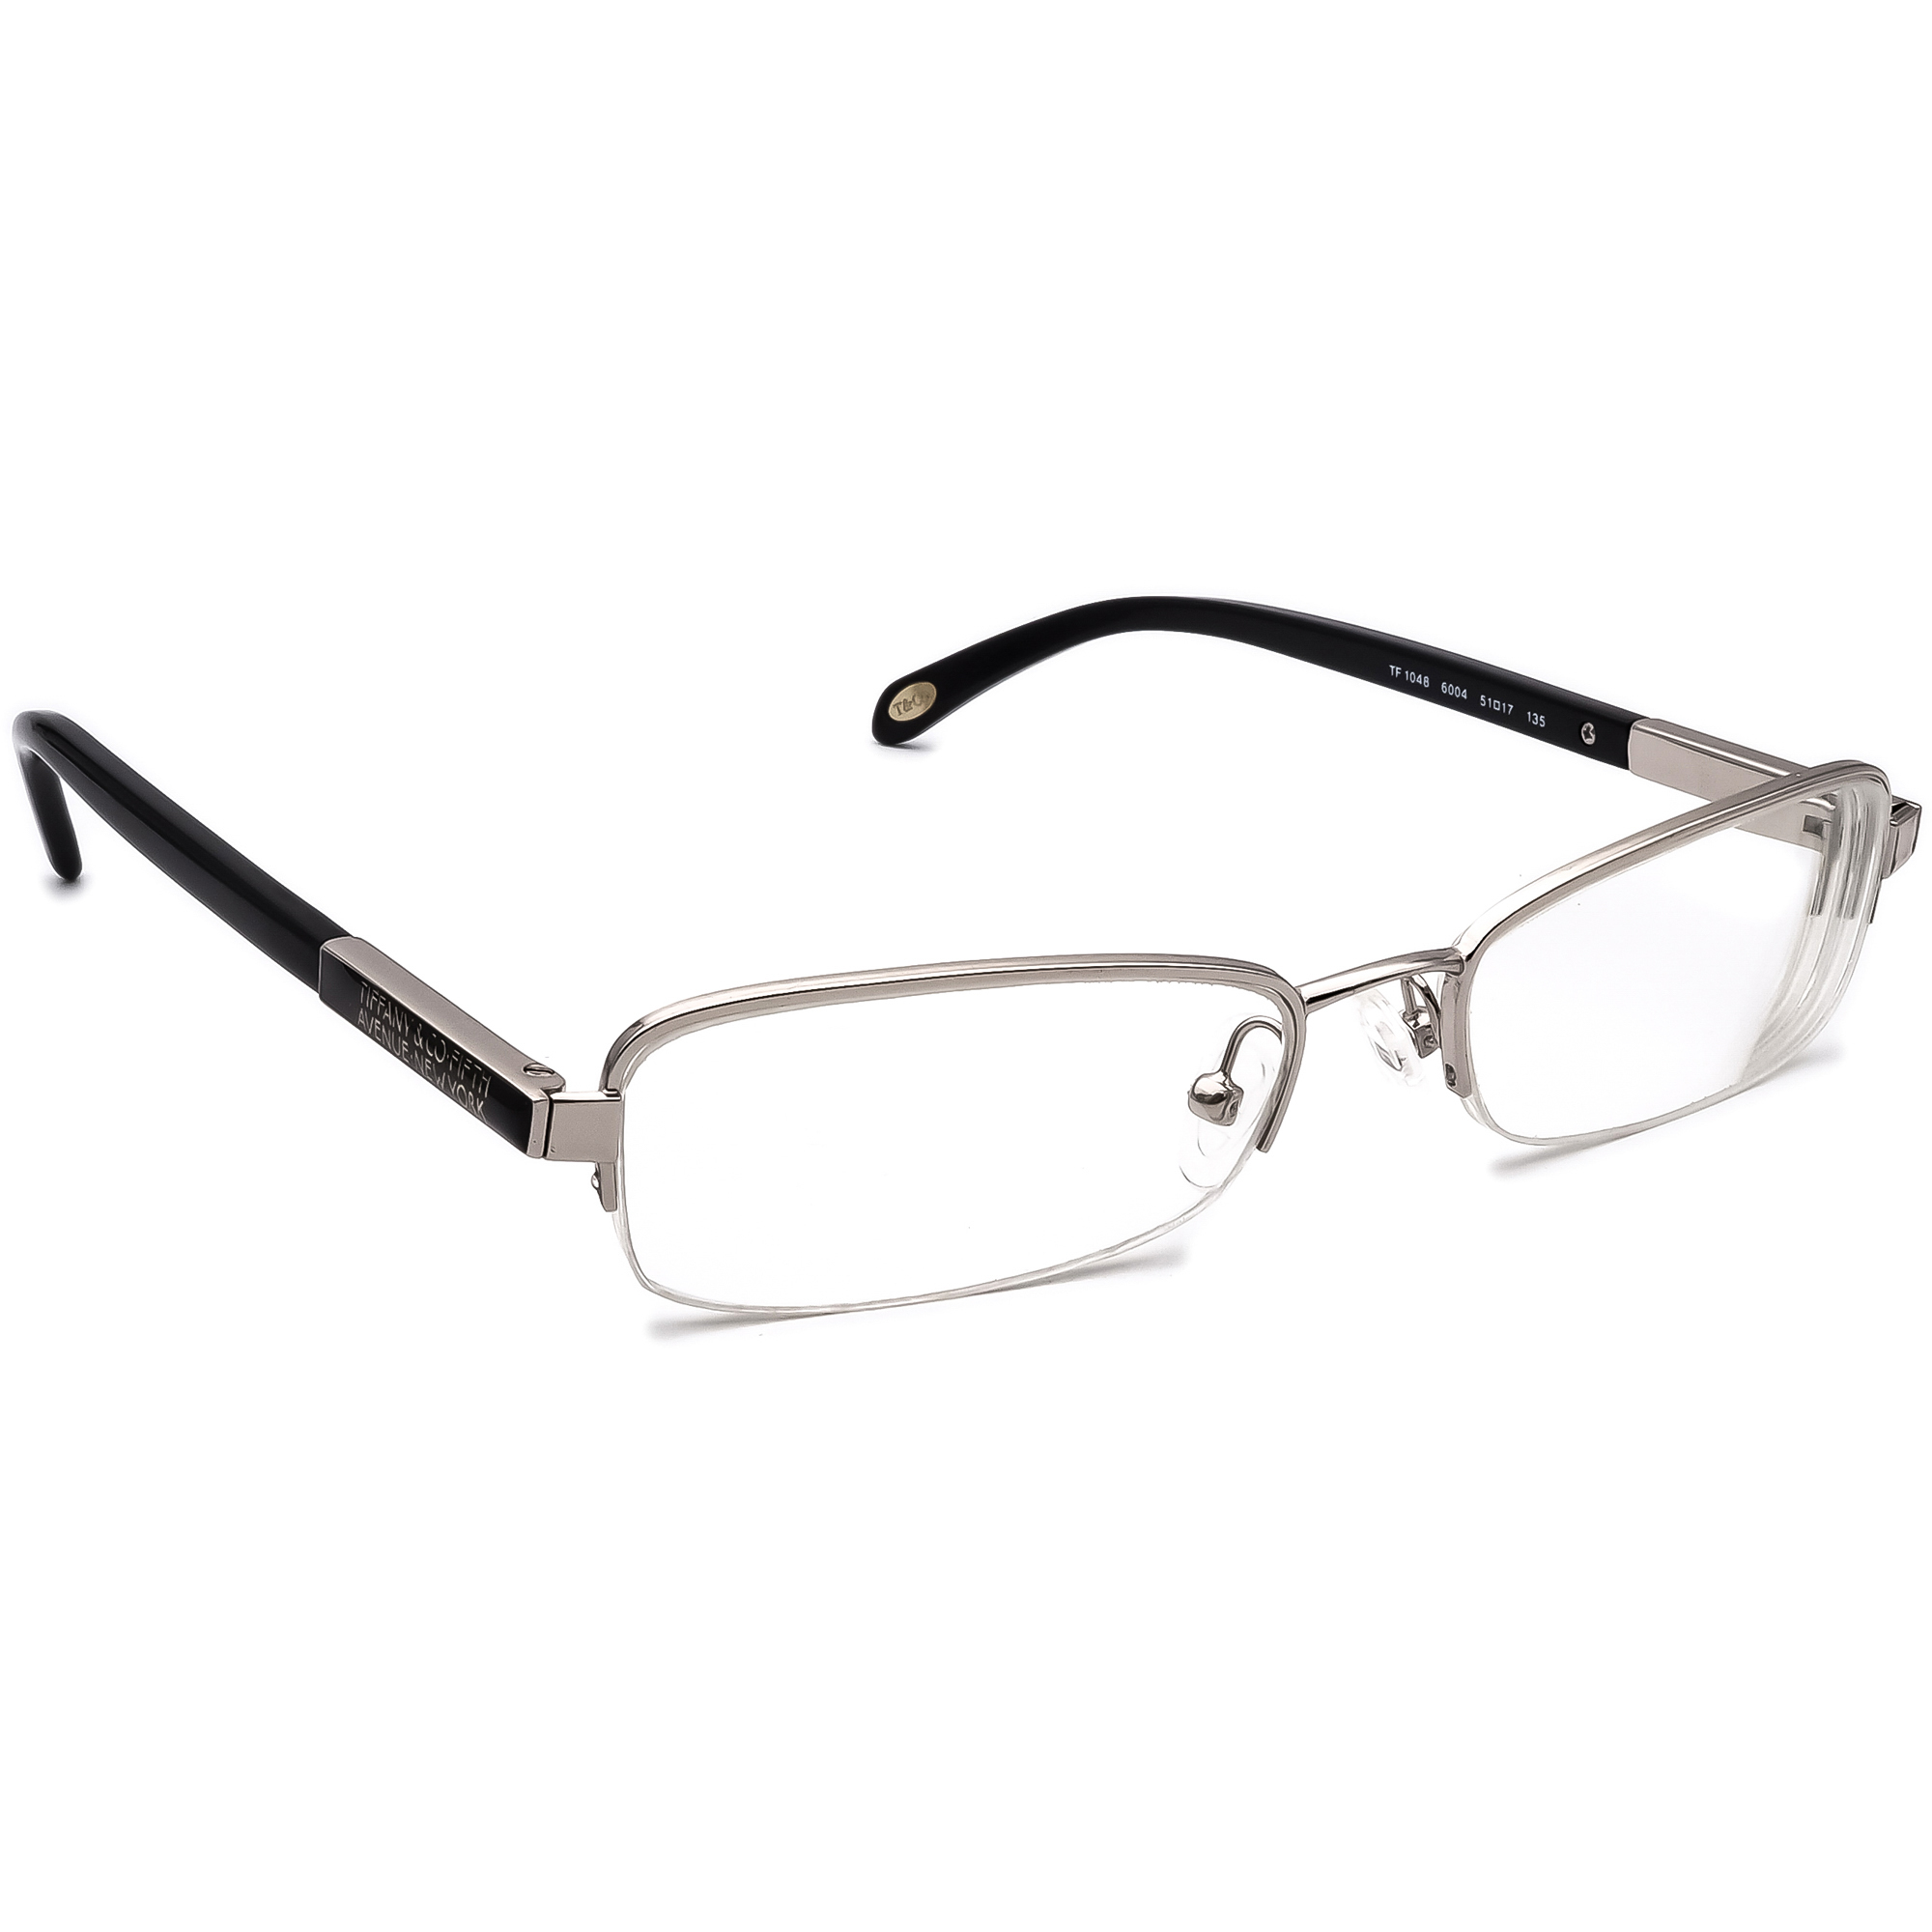 Tiffany & Co. TF 1048 6004 Eyeglasses